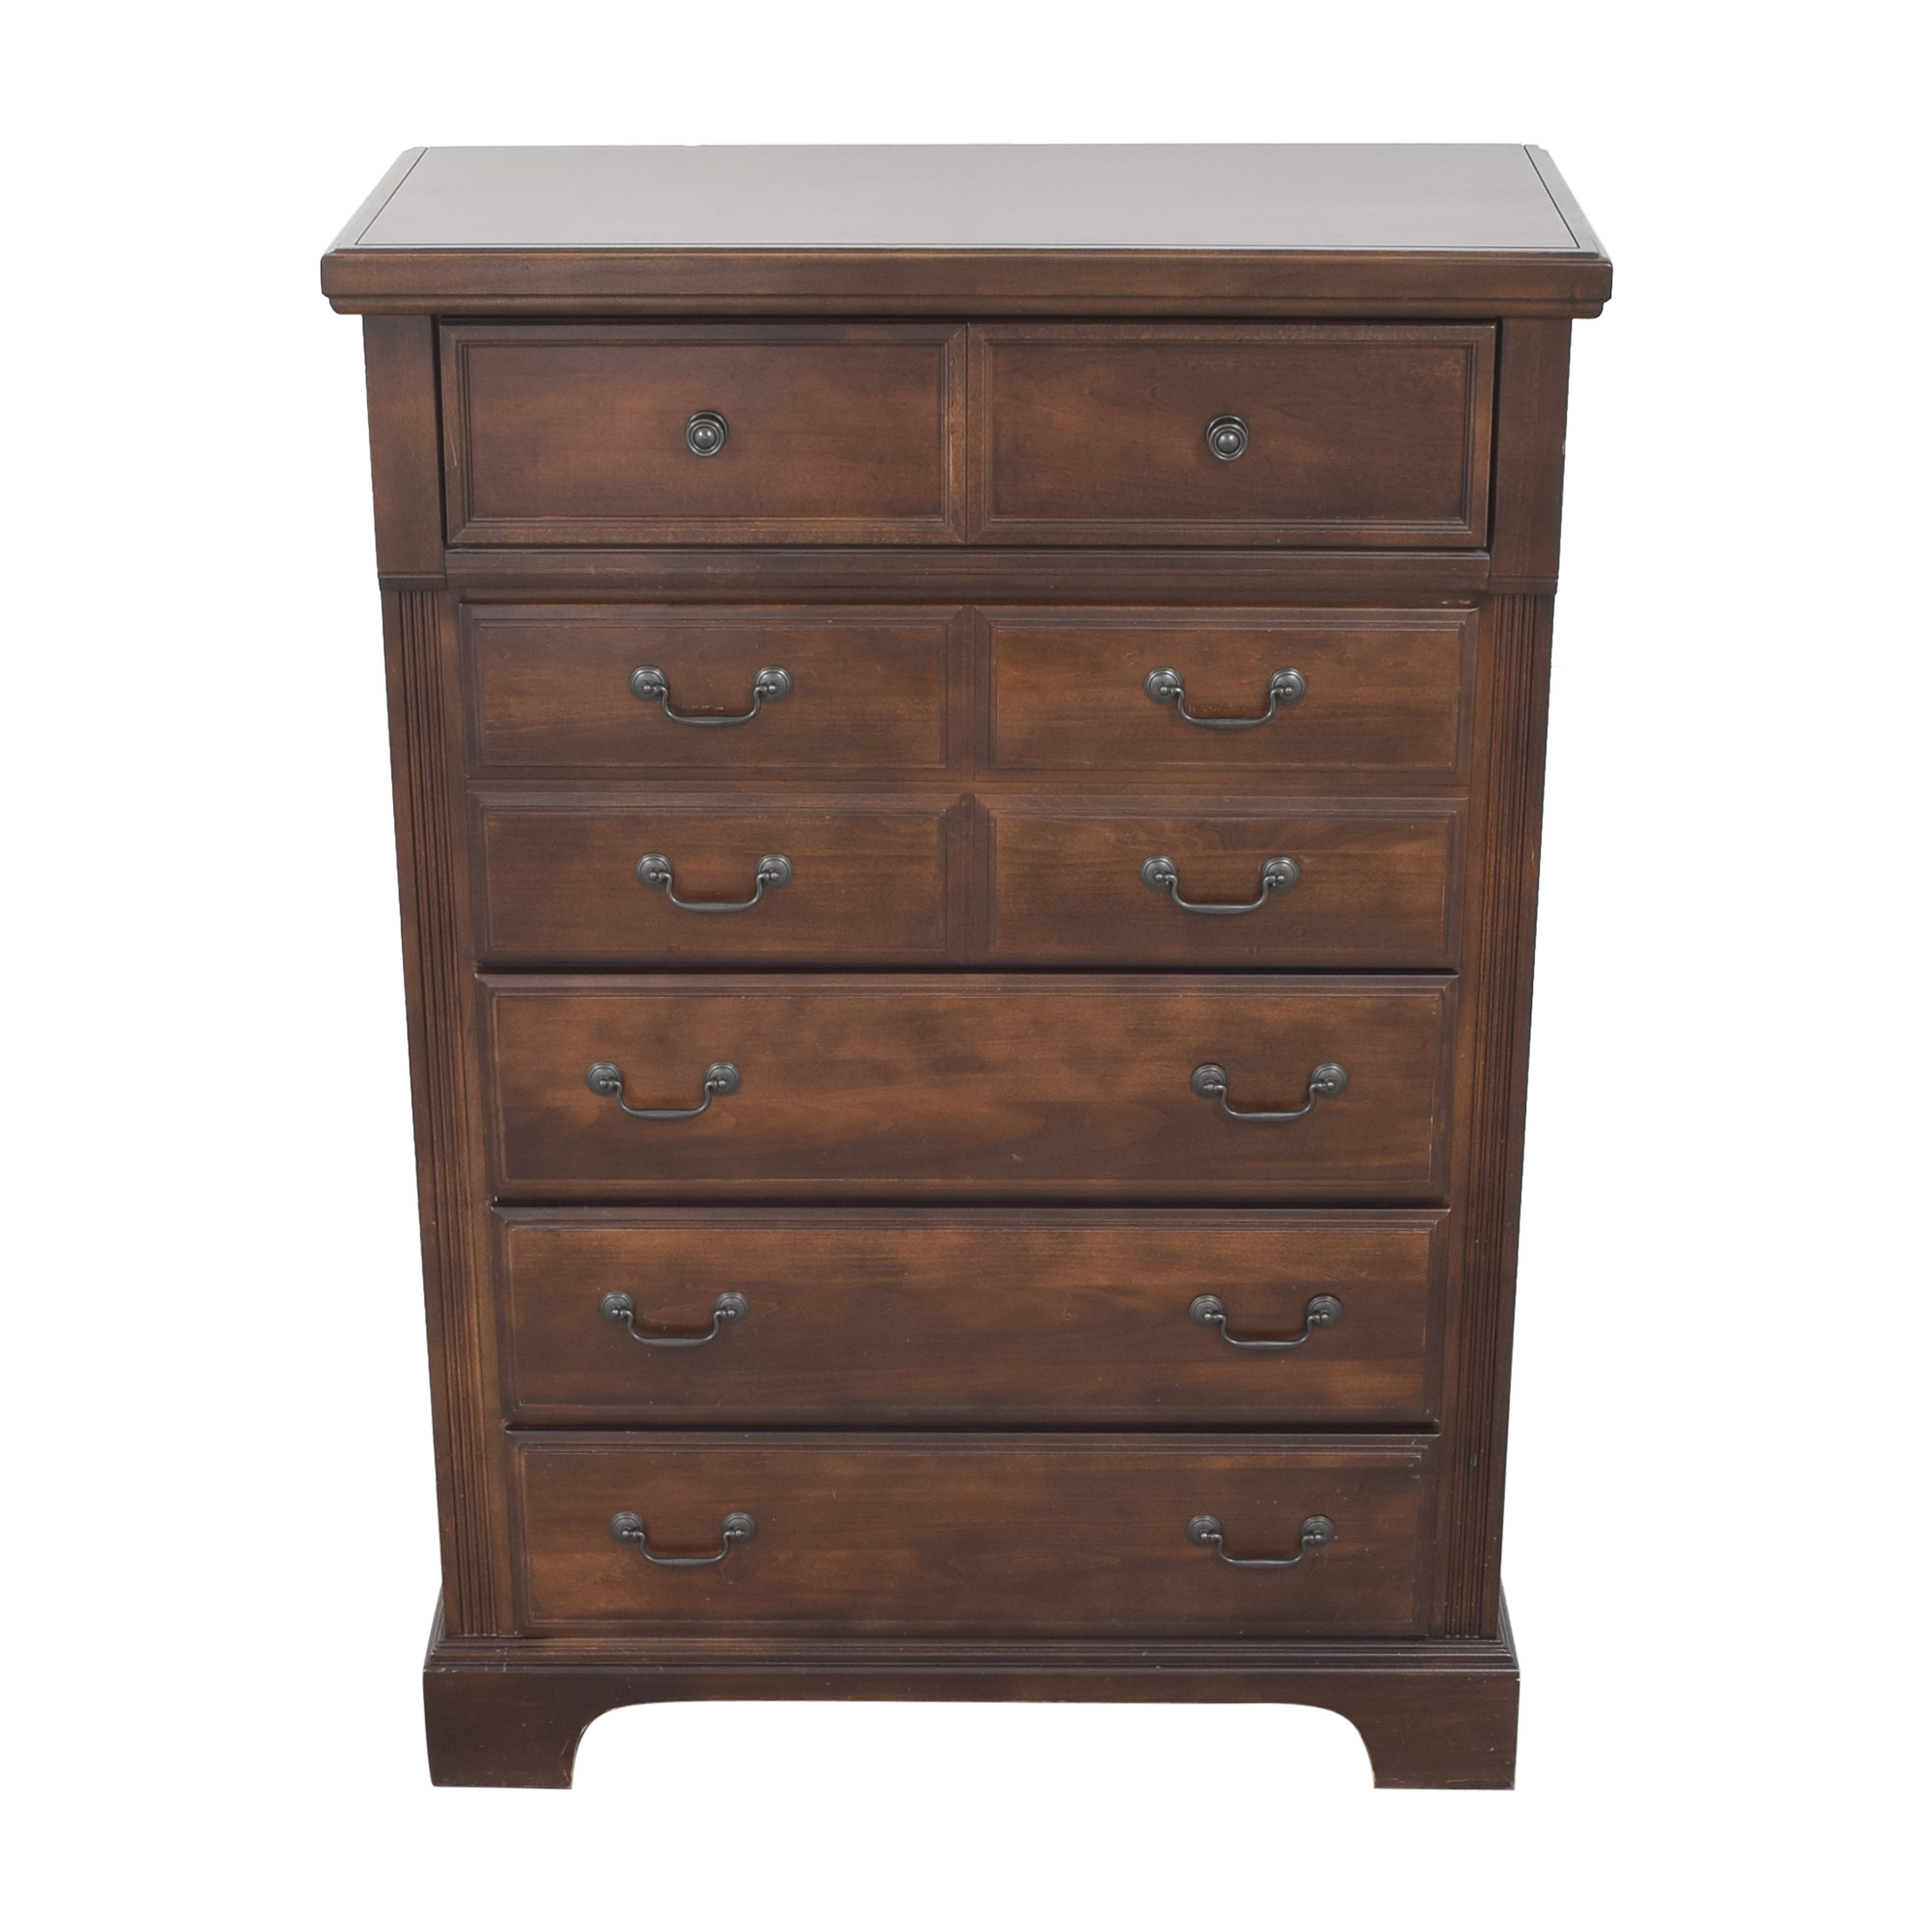 Vaughan-Bassett Vaughan-Bassett Five Drawer Tall Chest discount